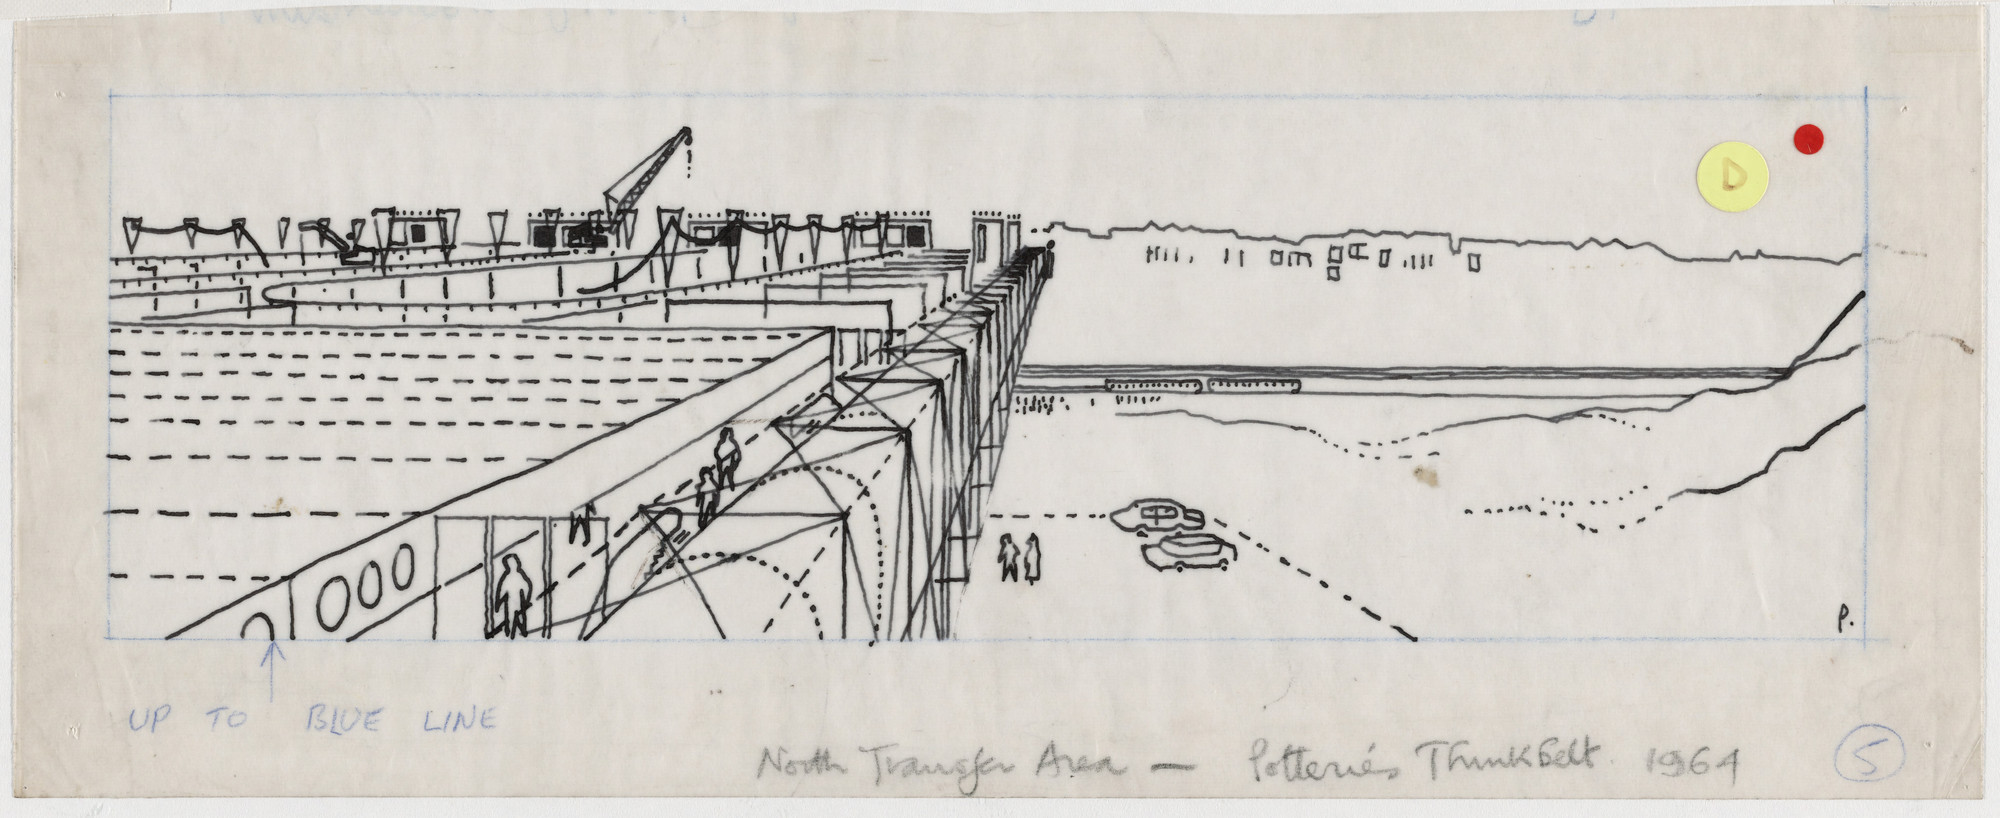 Cedric Price. Potteries Thinkbelt Project, Staffordshire, England (Perspective of Pitts Hill, North Transfer Area). 1964–1966